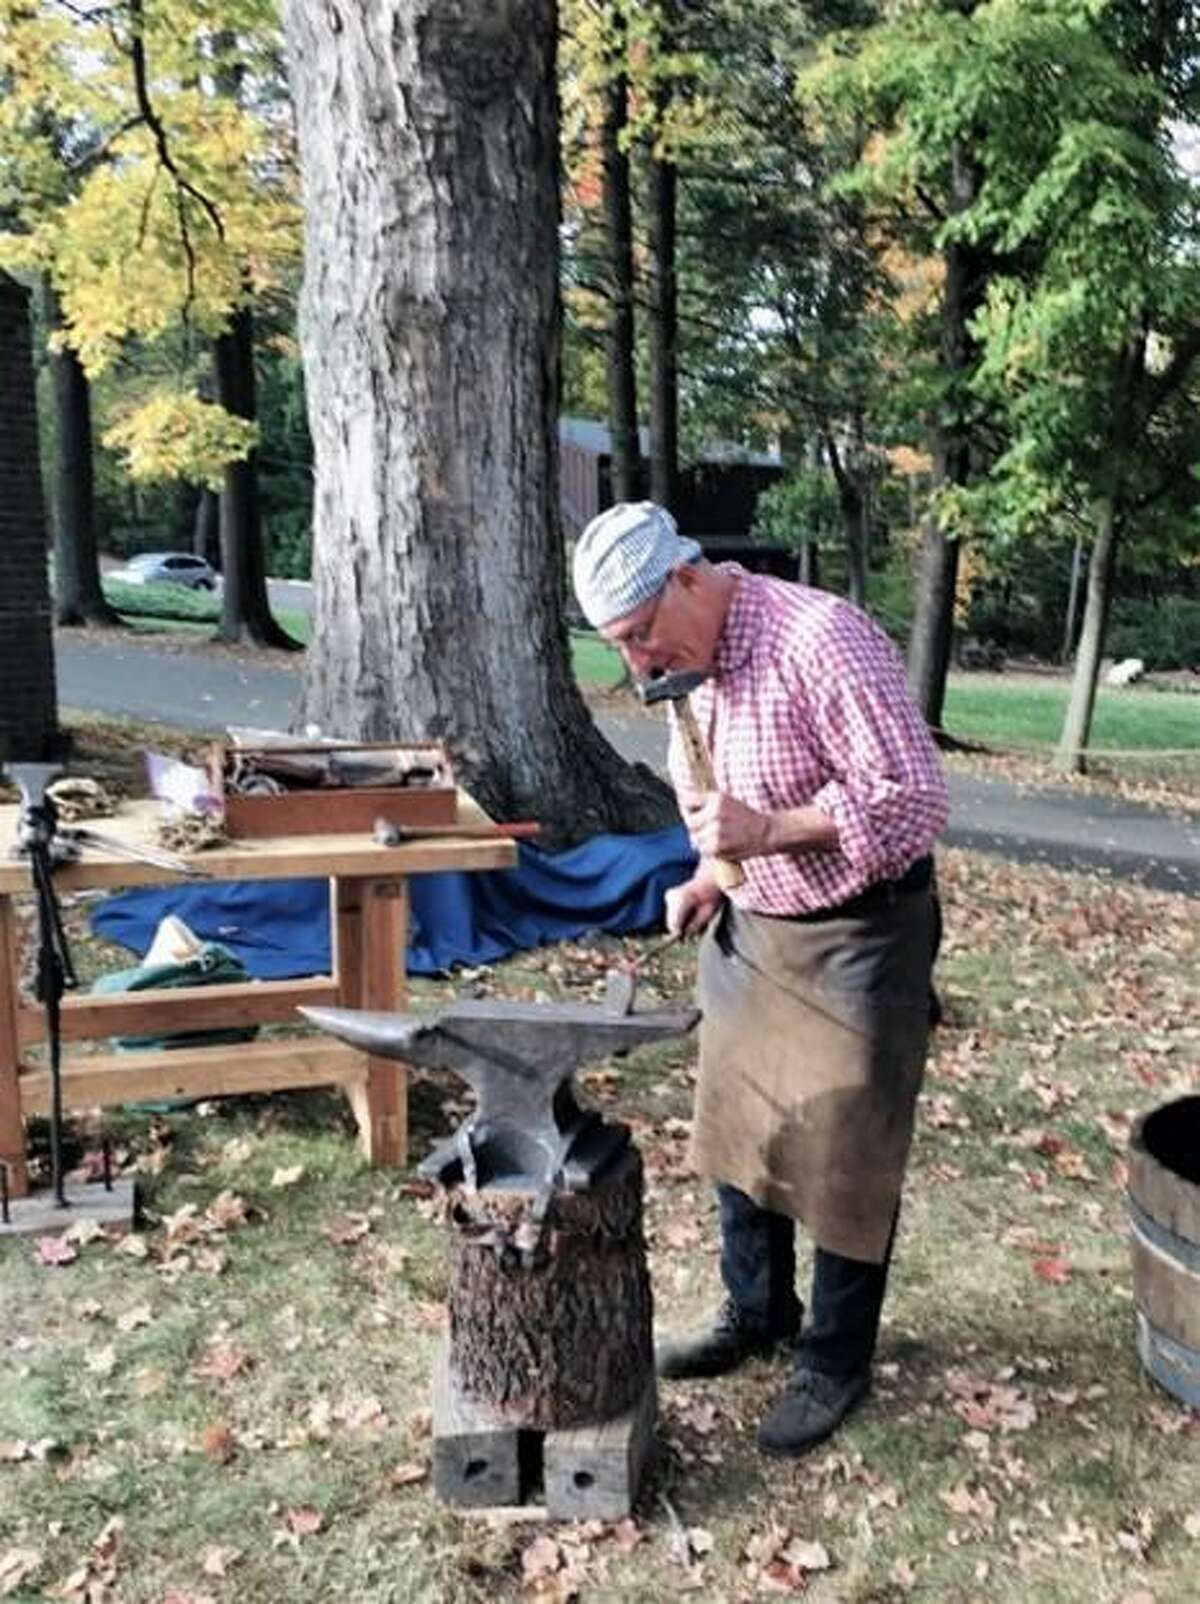 Ralph Lapidus depicts 18th-century blacksmithing in an outdoor family demonstration of the 2017 #HandsonHistory: It Takes A Village exhibition.